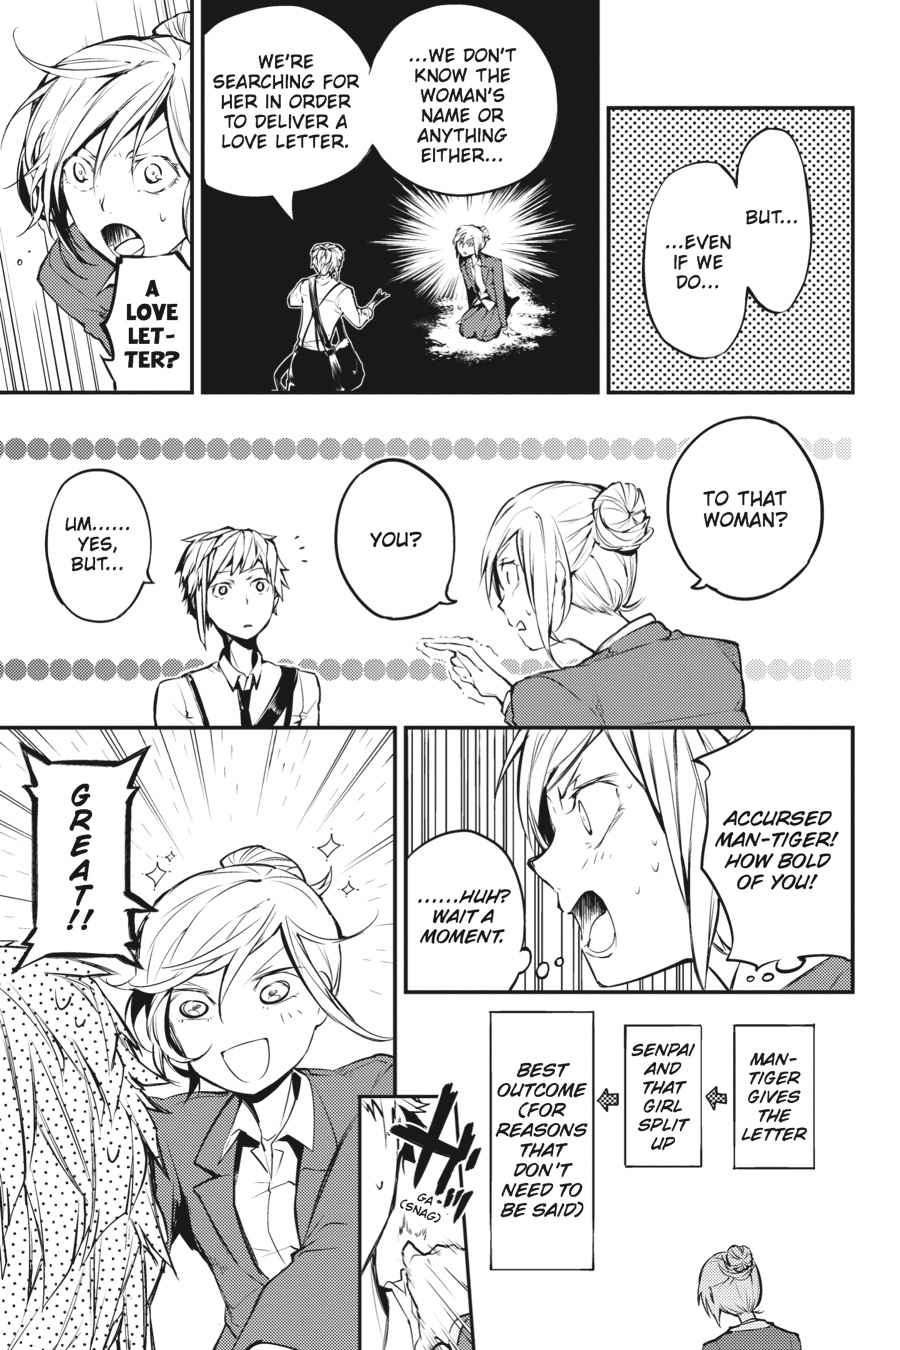 Bungou Stray Dogs Chapter 41 Page 21